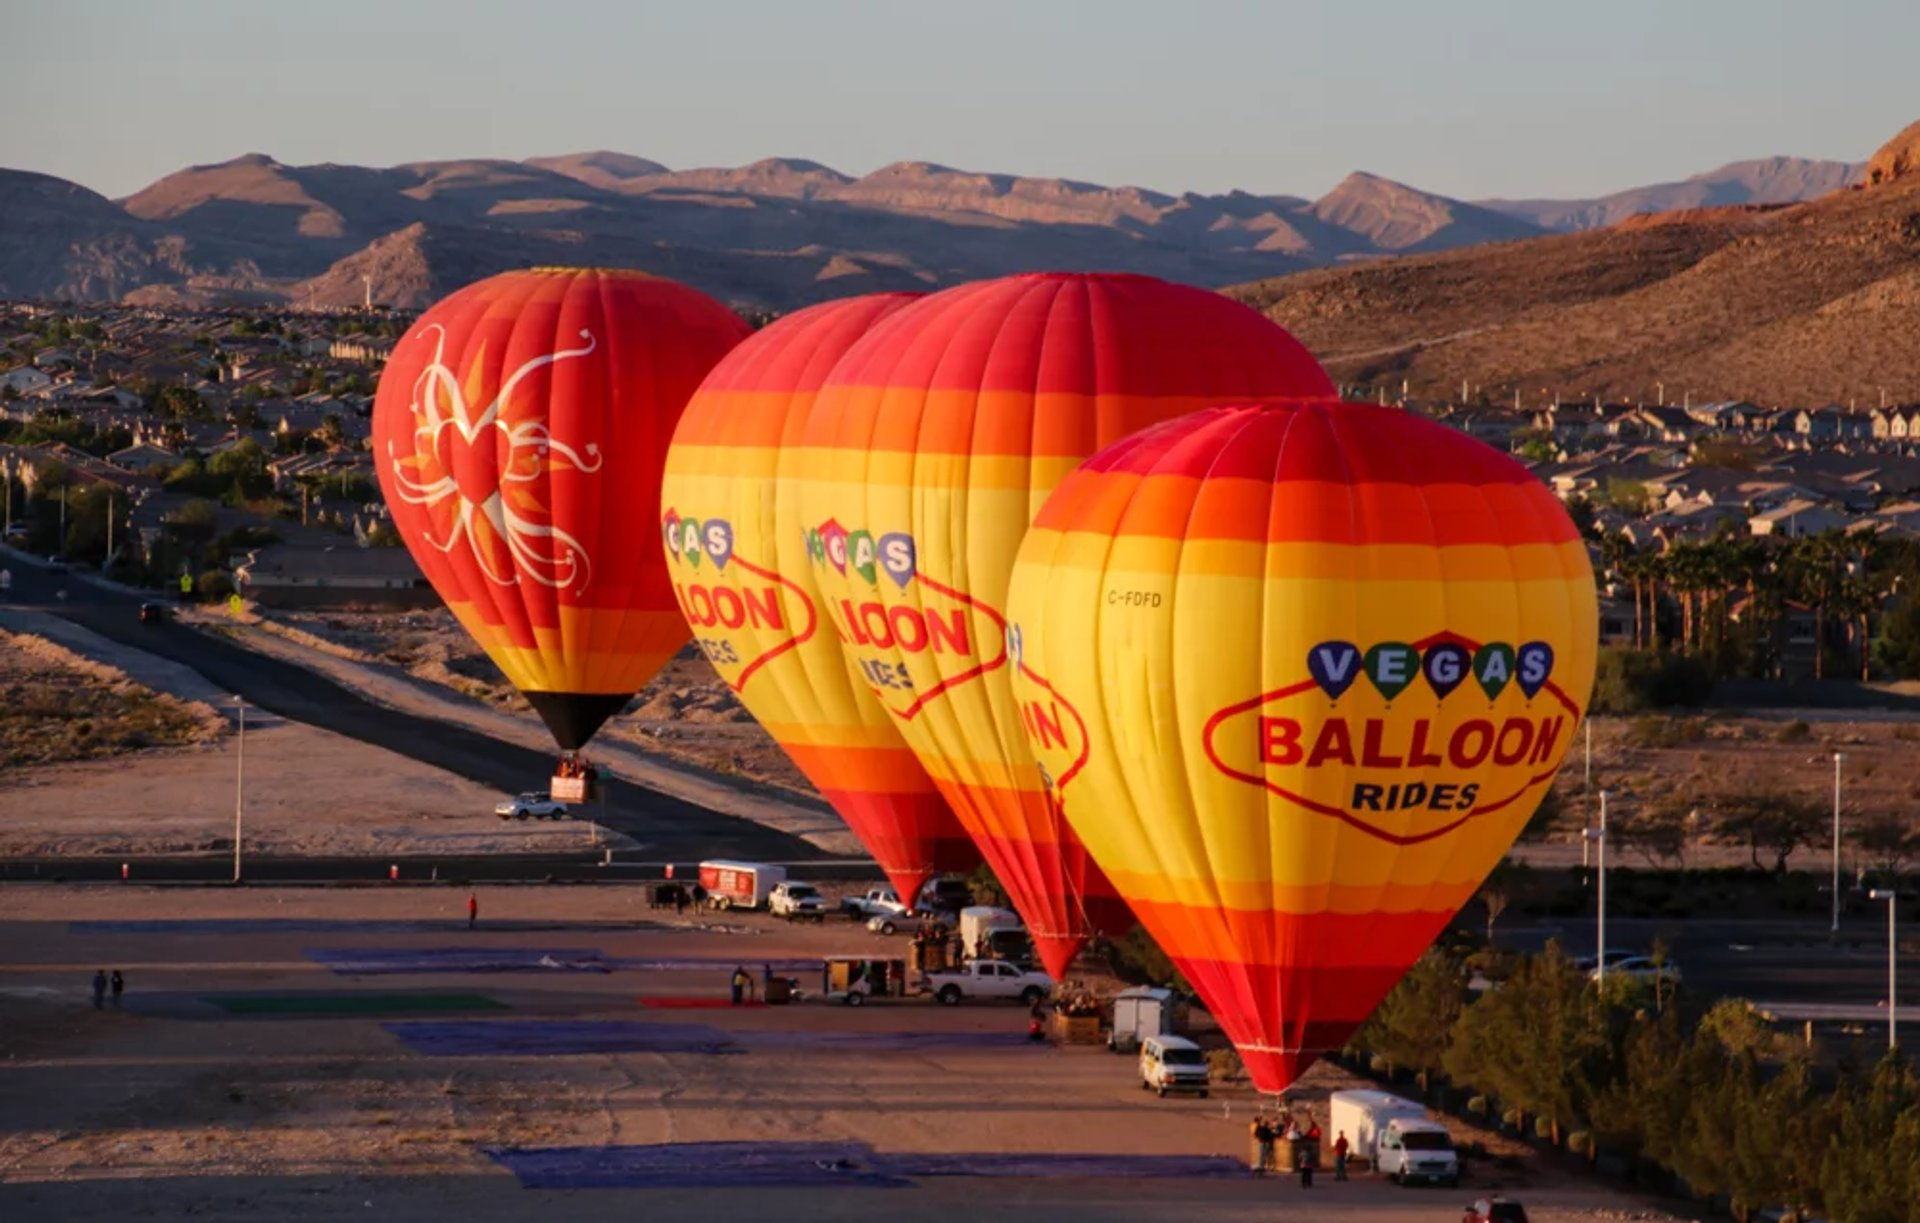 Sunset Hot Air Balloon Rides in Las Vegas - Best Season